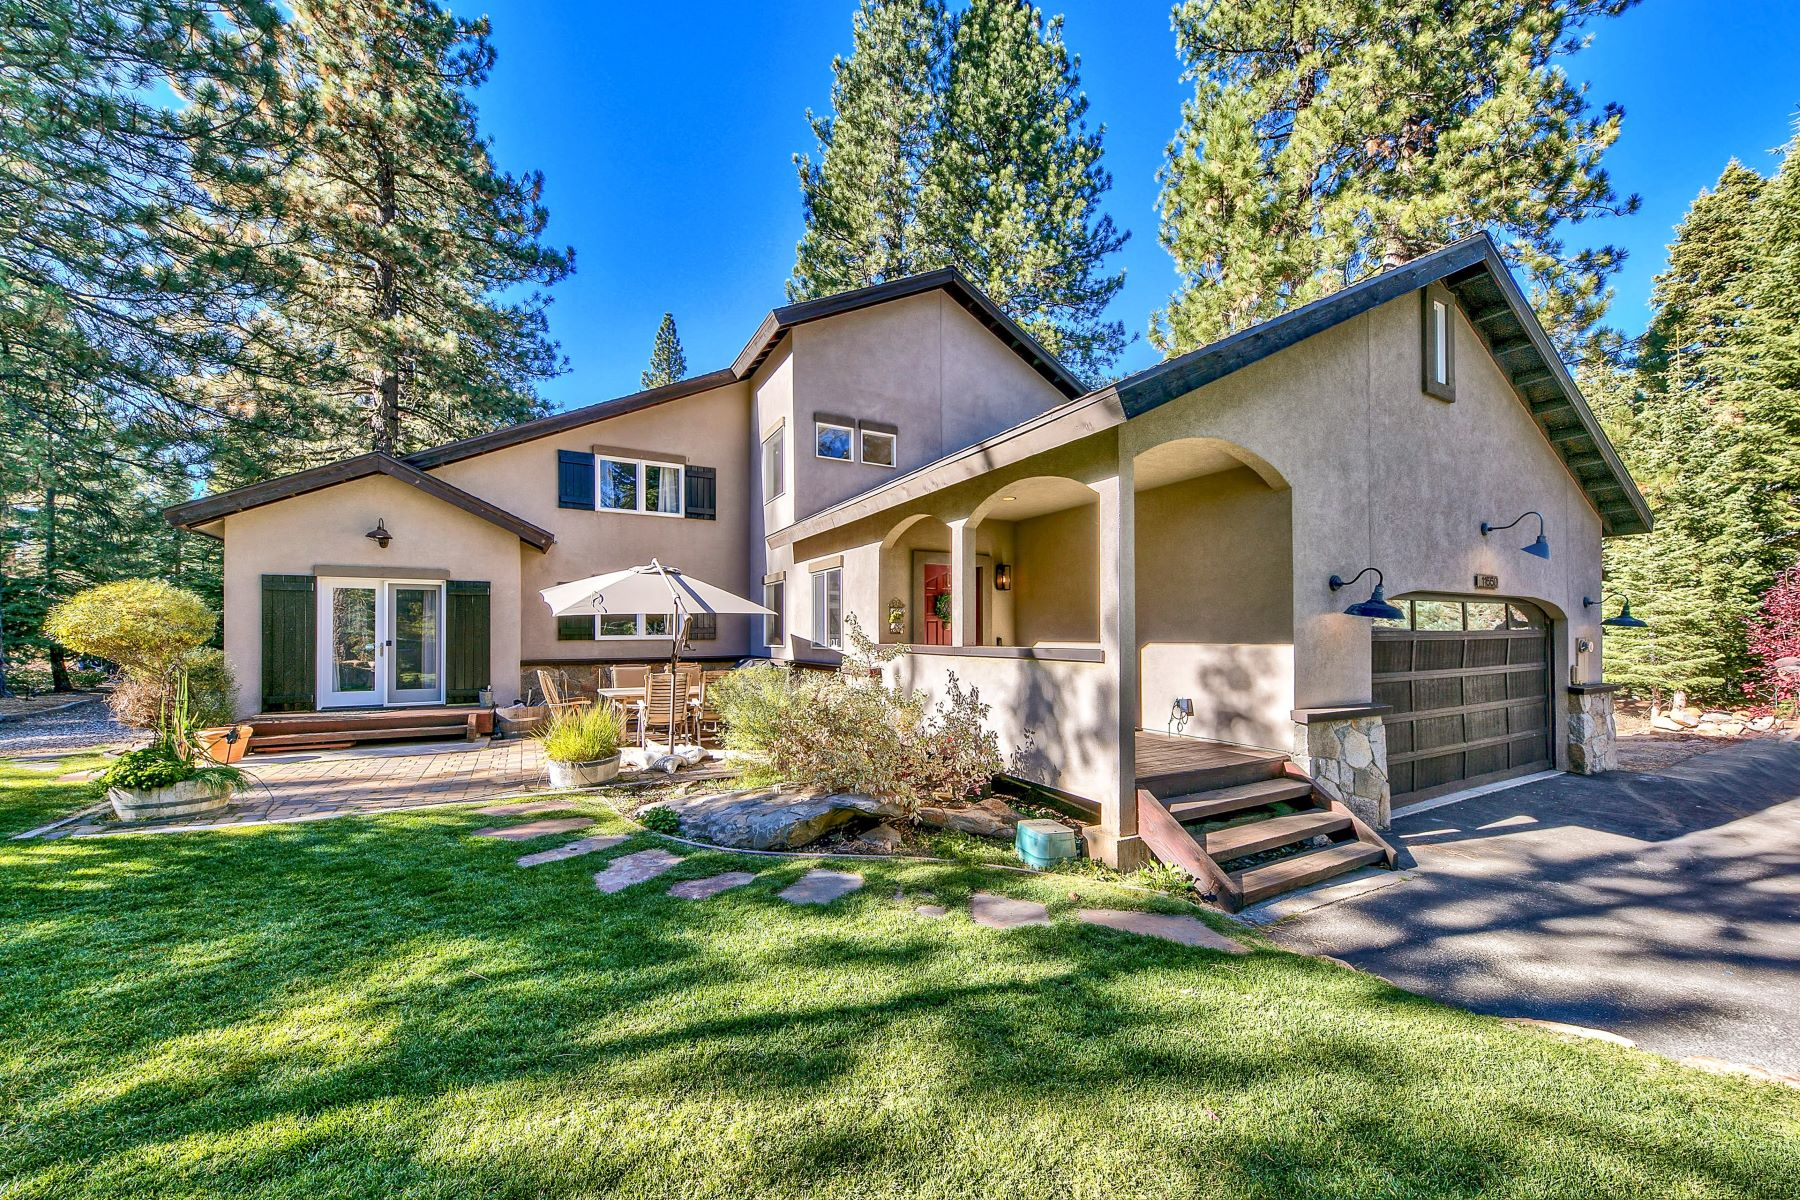 Single Family Homes for Active at Estate In The Woods 11550 Stillwater Court Truckee, California 96161 United States